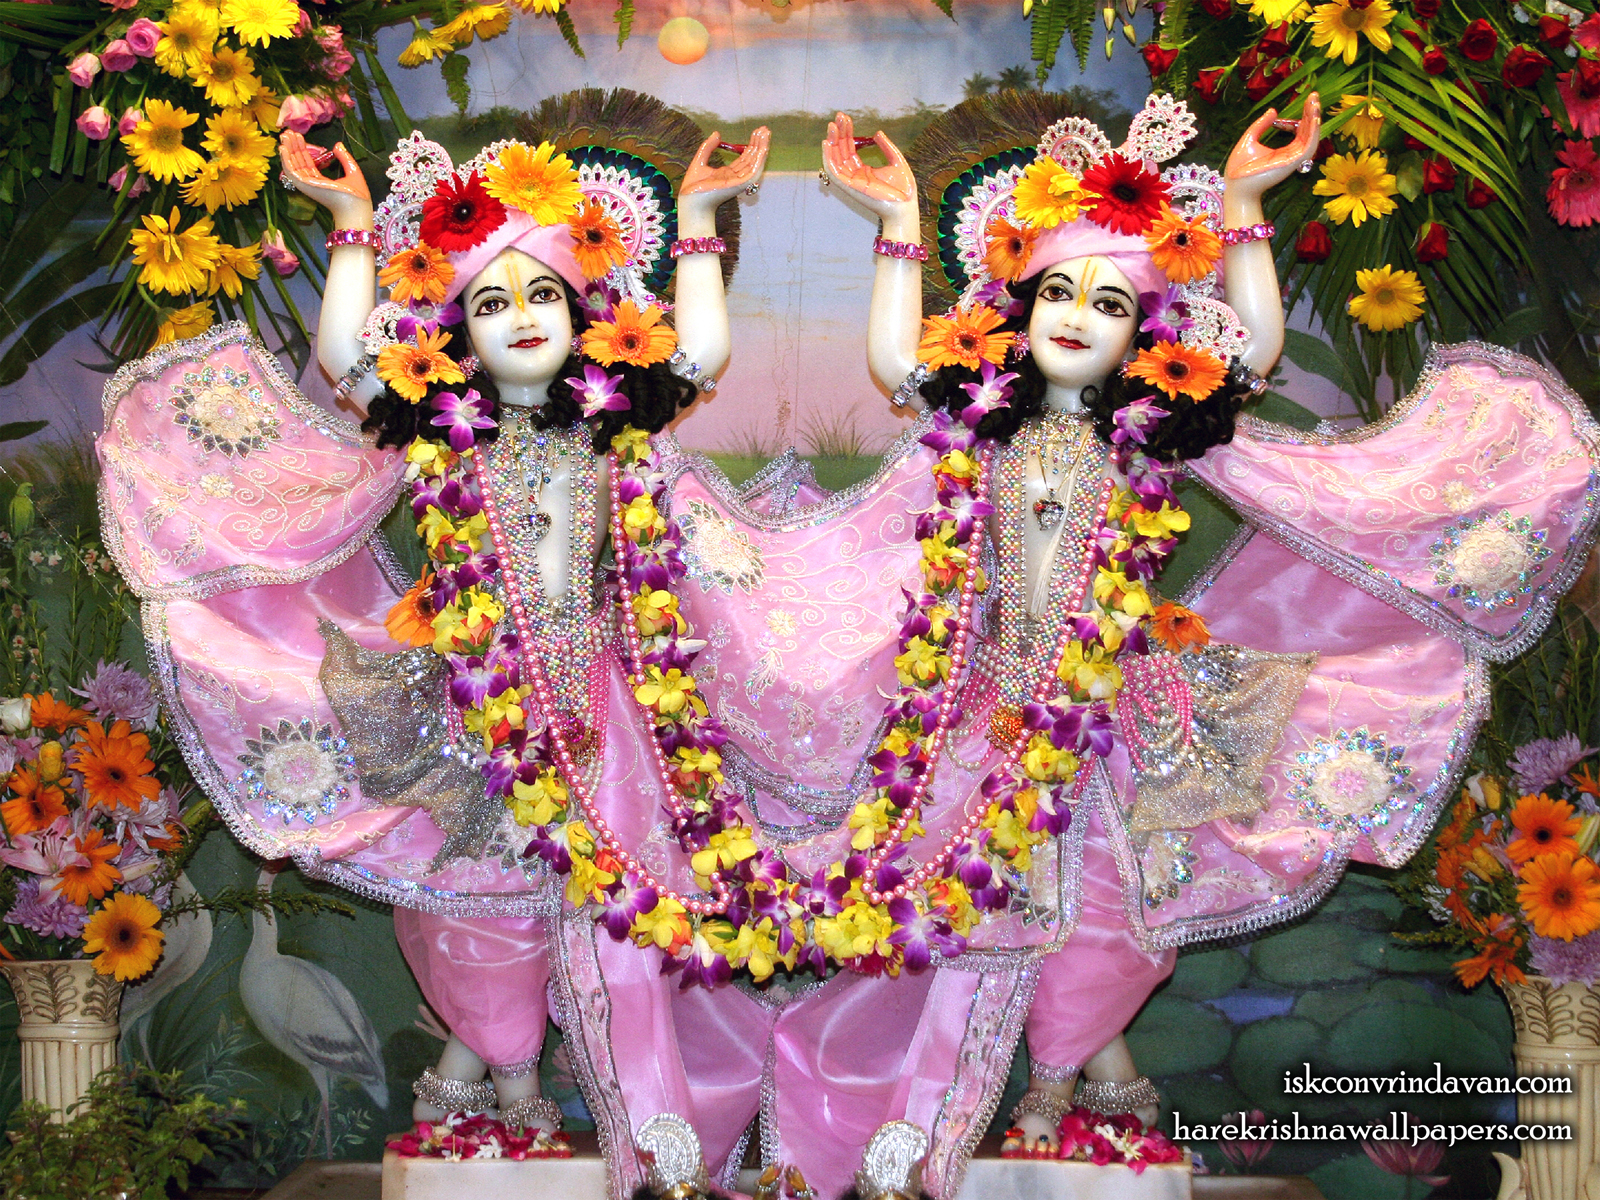 Sri Sri Gaura Nitai Wallpaper (090) Size1600x1200 Download